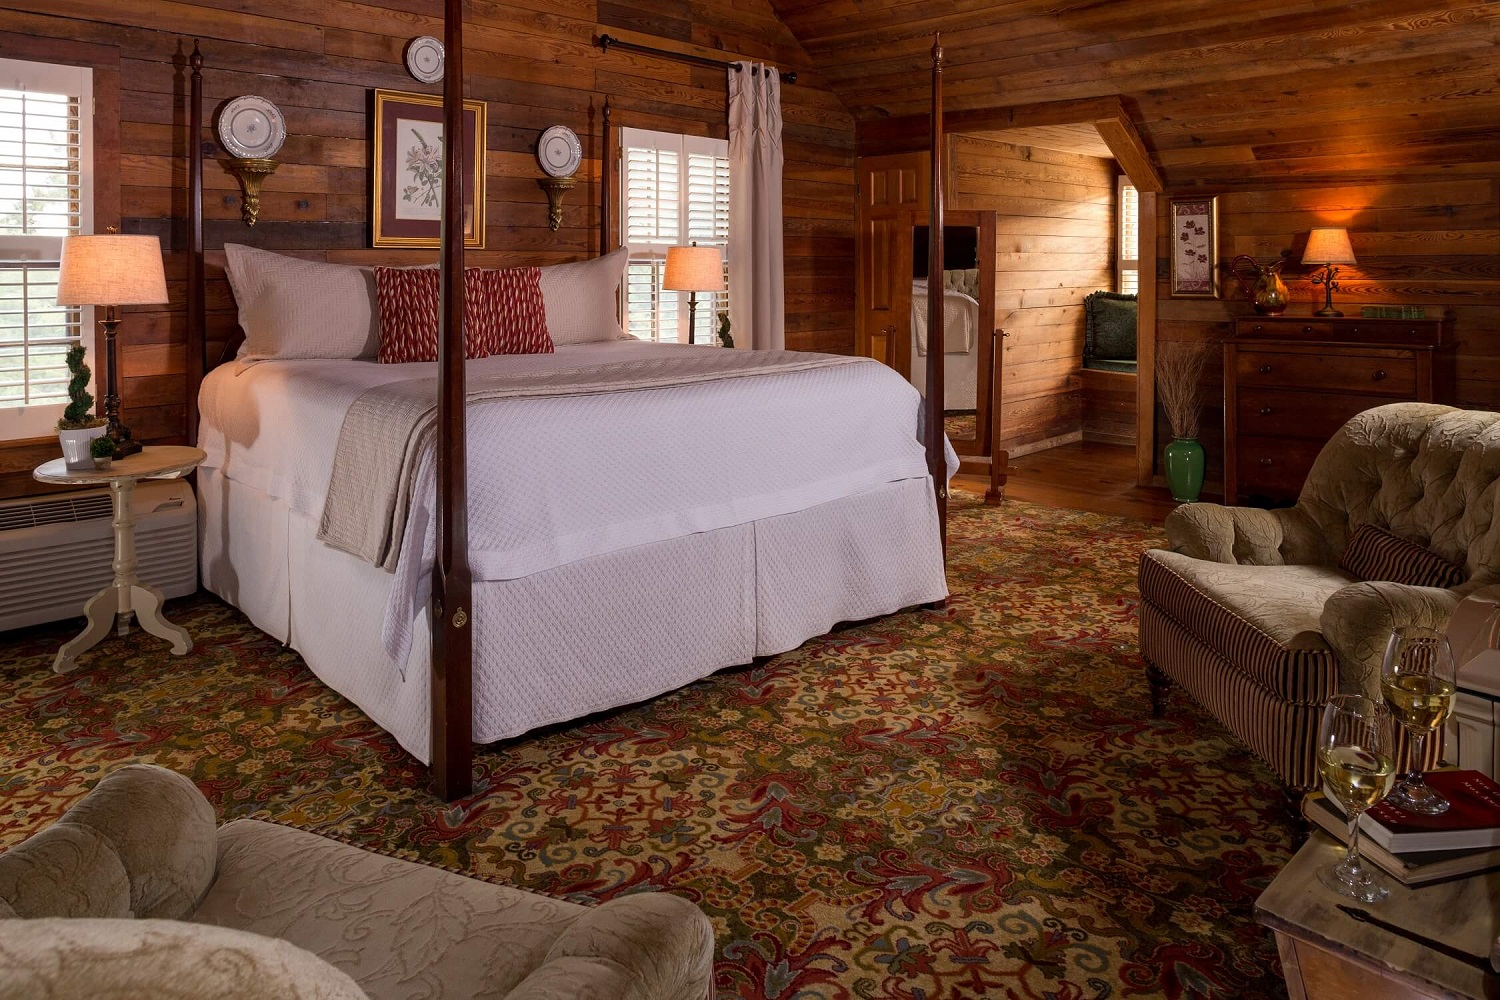 Accommodations near the best Wine Festivals in North Georgia